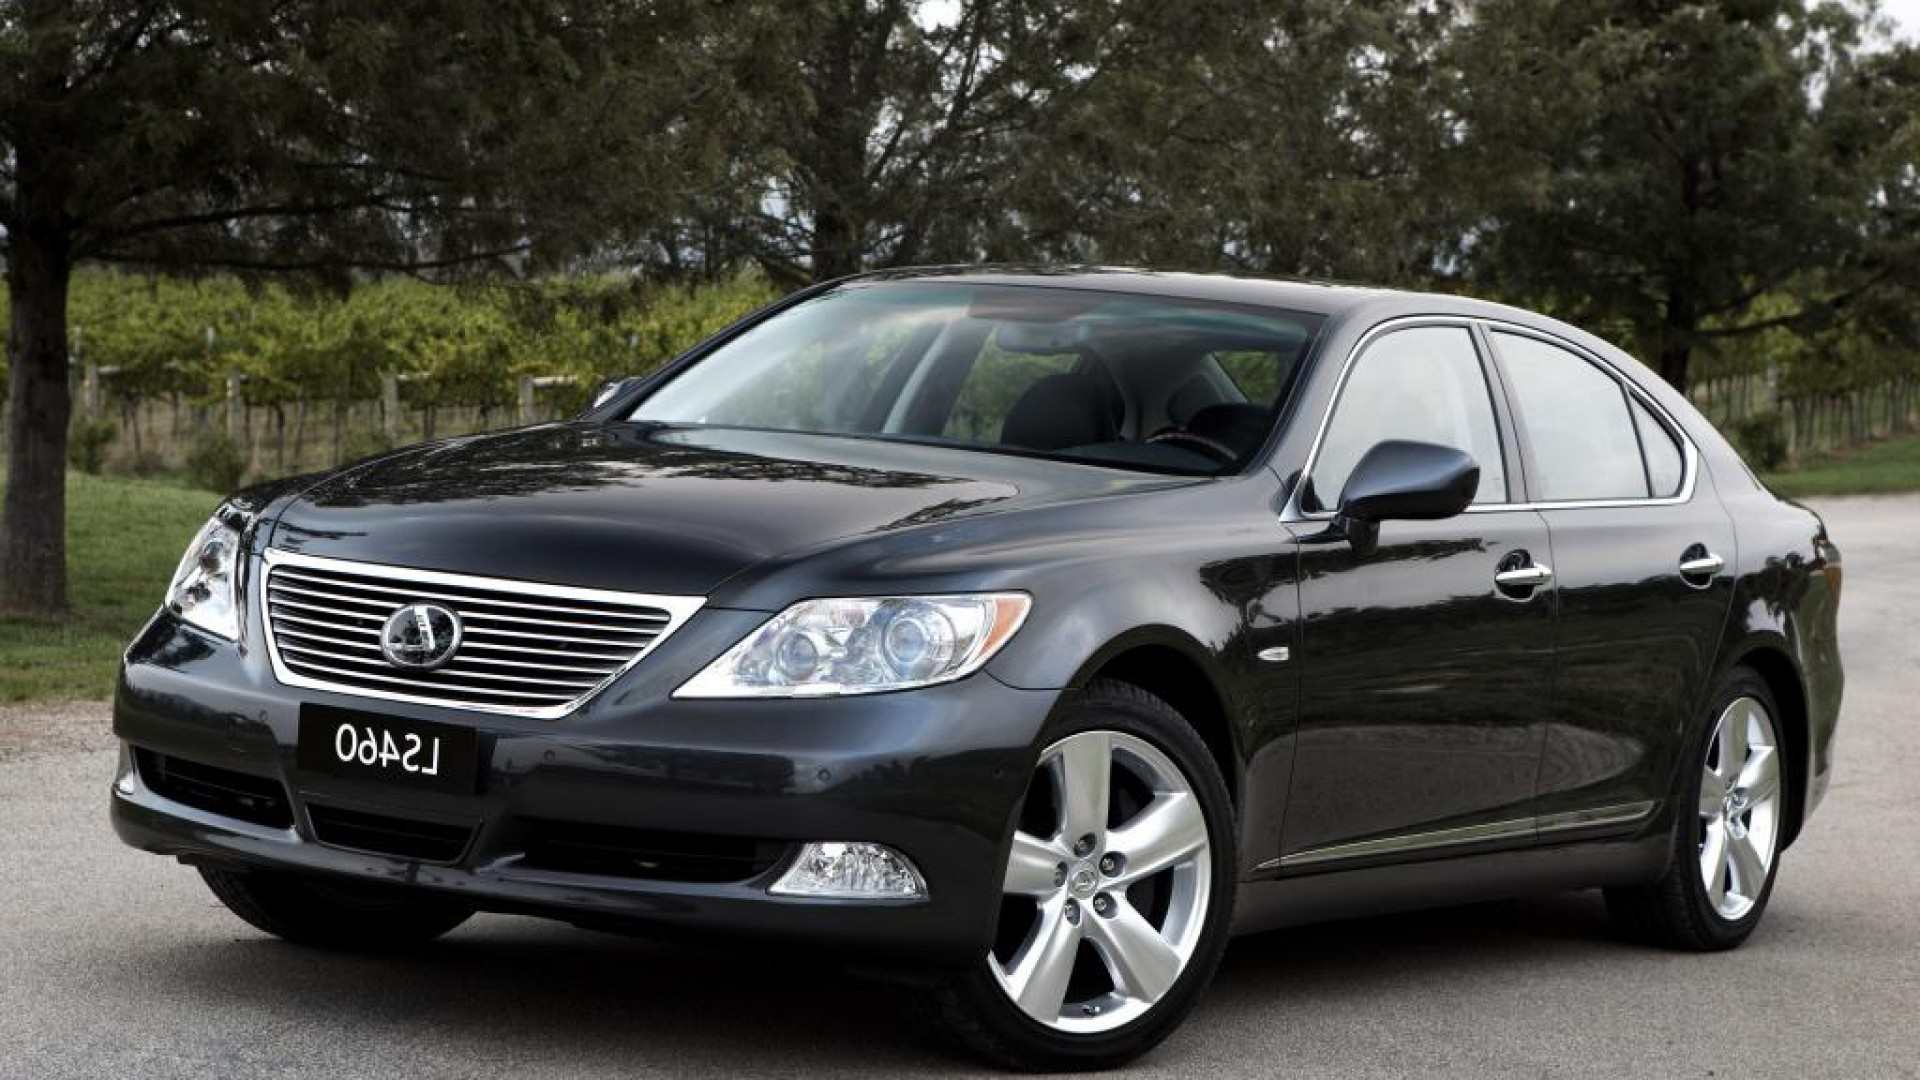 2007 lexus ls 460 photos informations articles. Black Bedroom Furniture Sets. Home Design Ideas